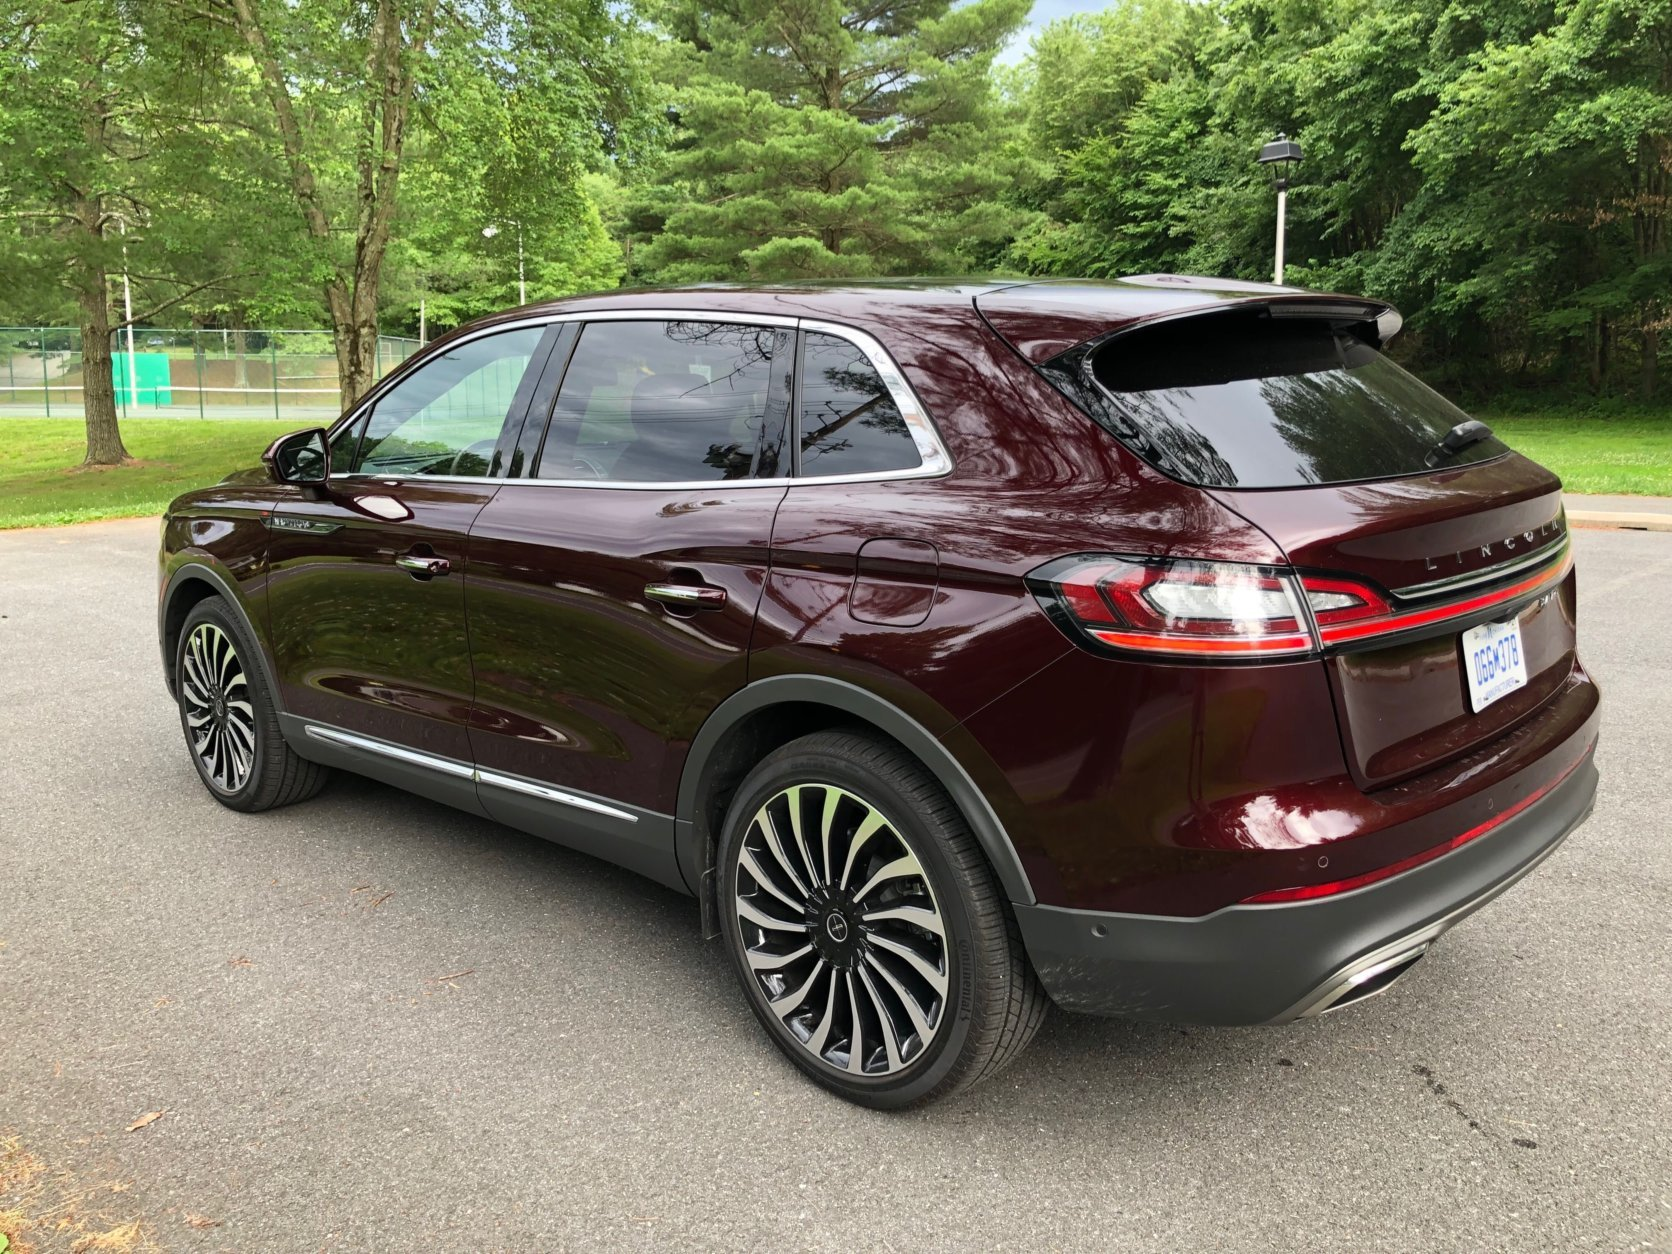 <p>The powerful optional twin-turbo V6 brings the SUV to life.</p>